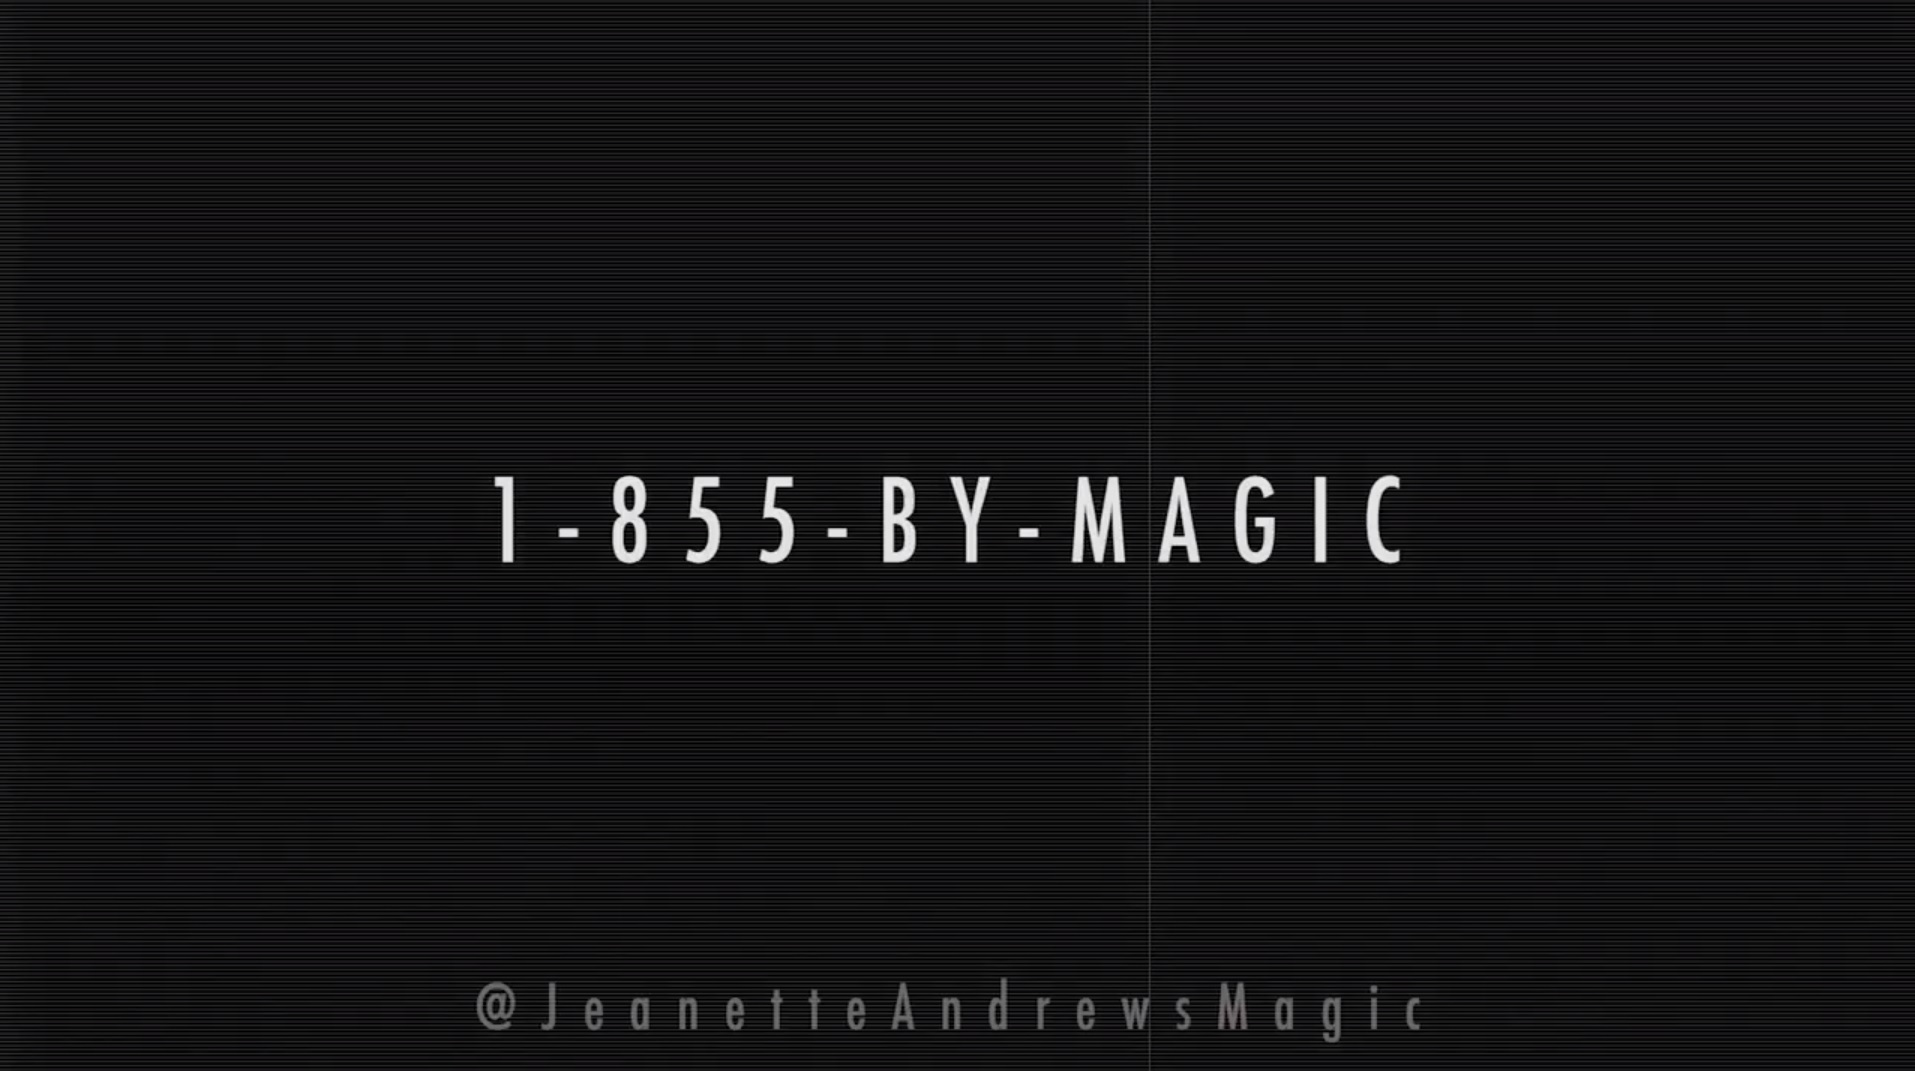 PERFORMANCE: Jeanette Andrews, Magic by Telephone